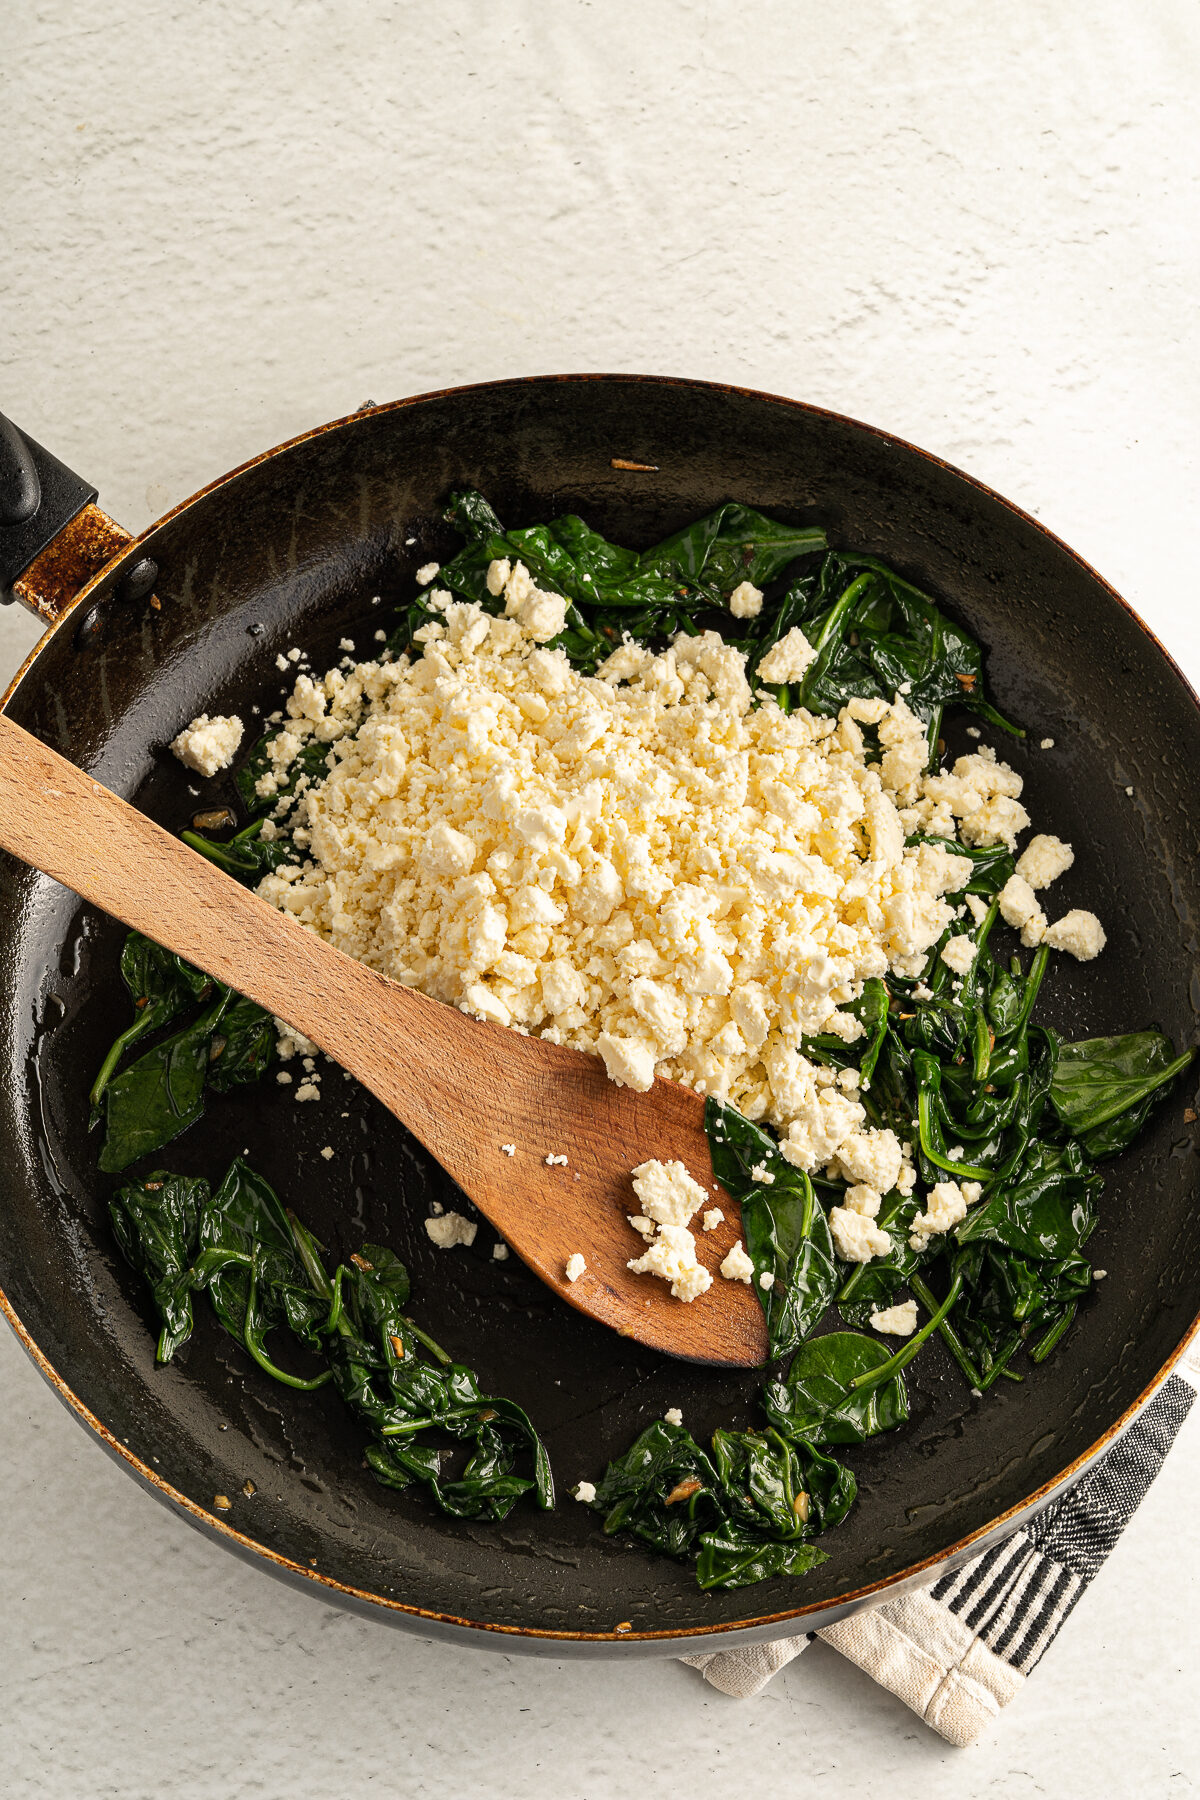 Cheese and spinach in a pan